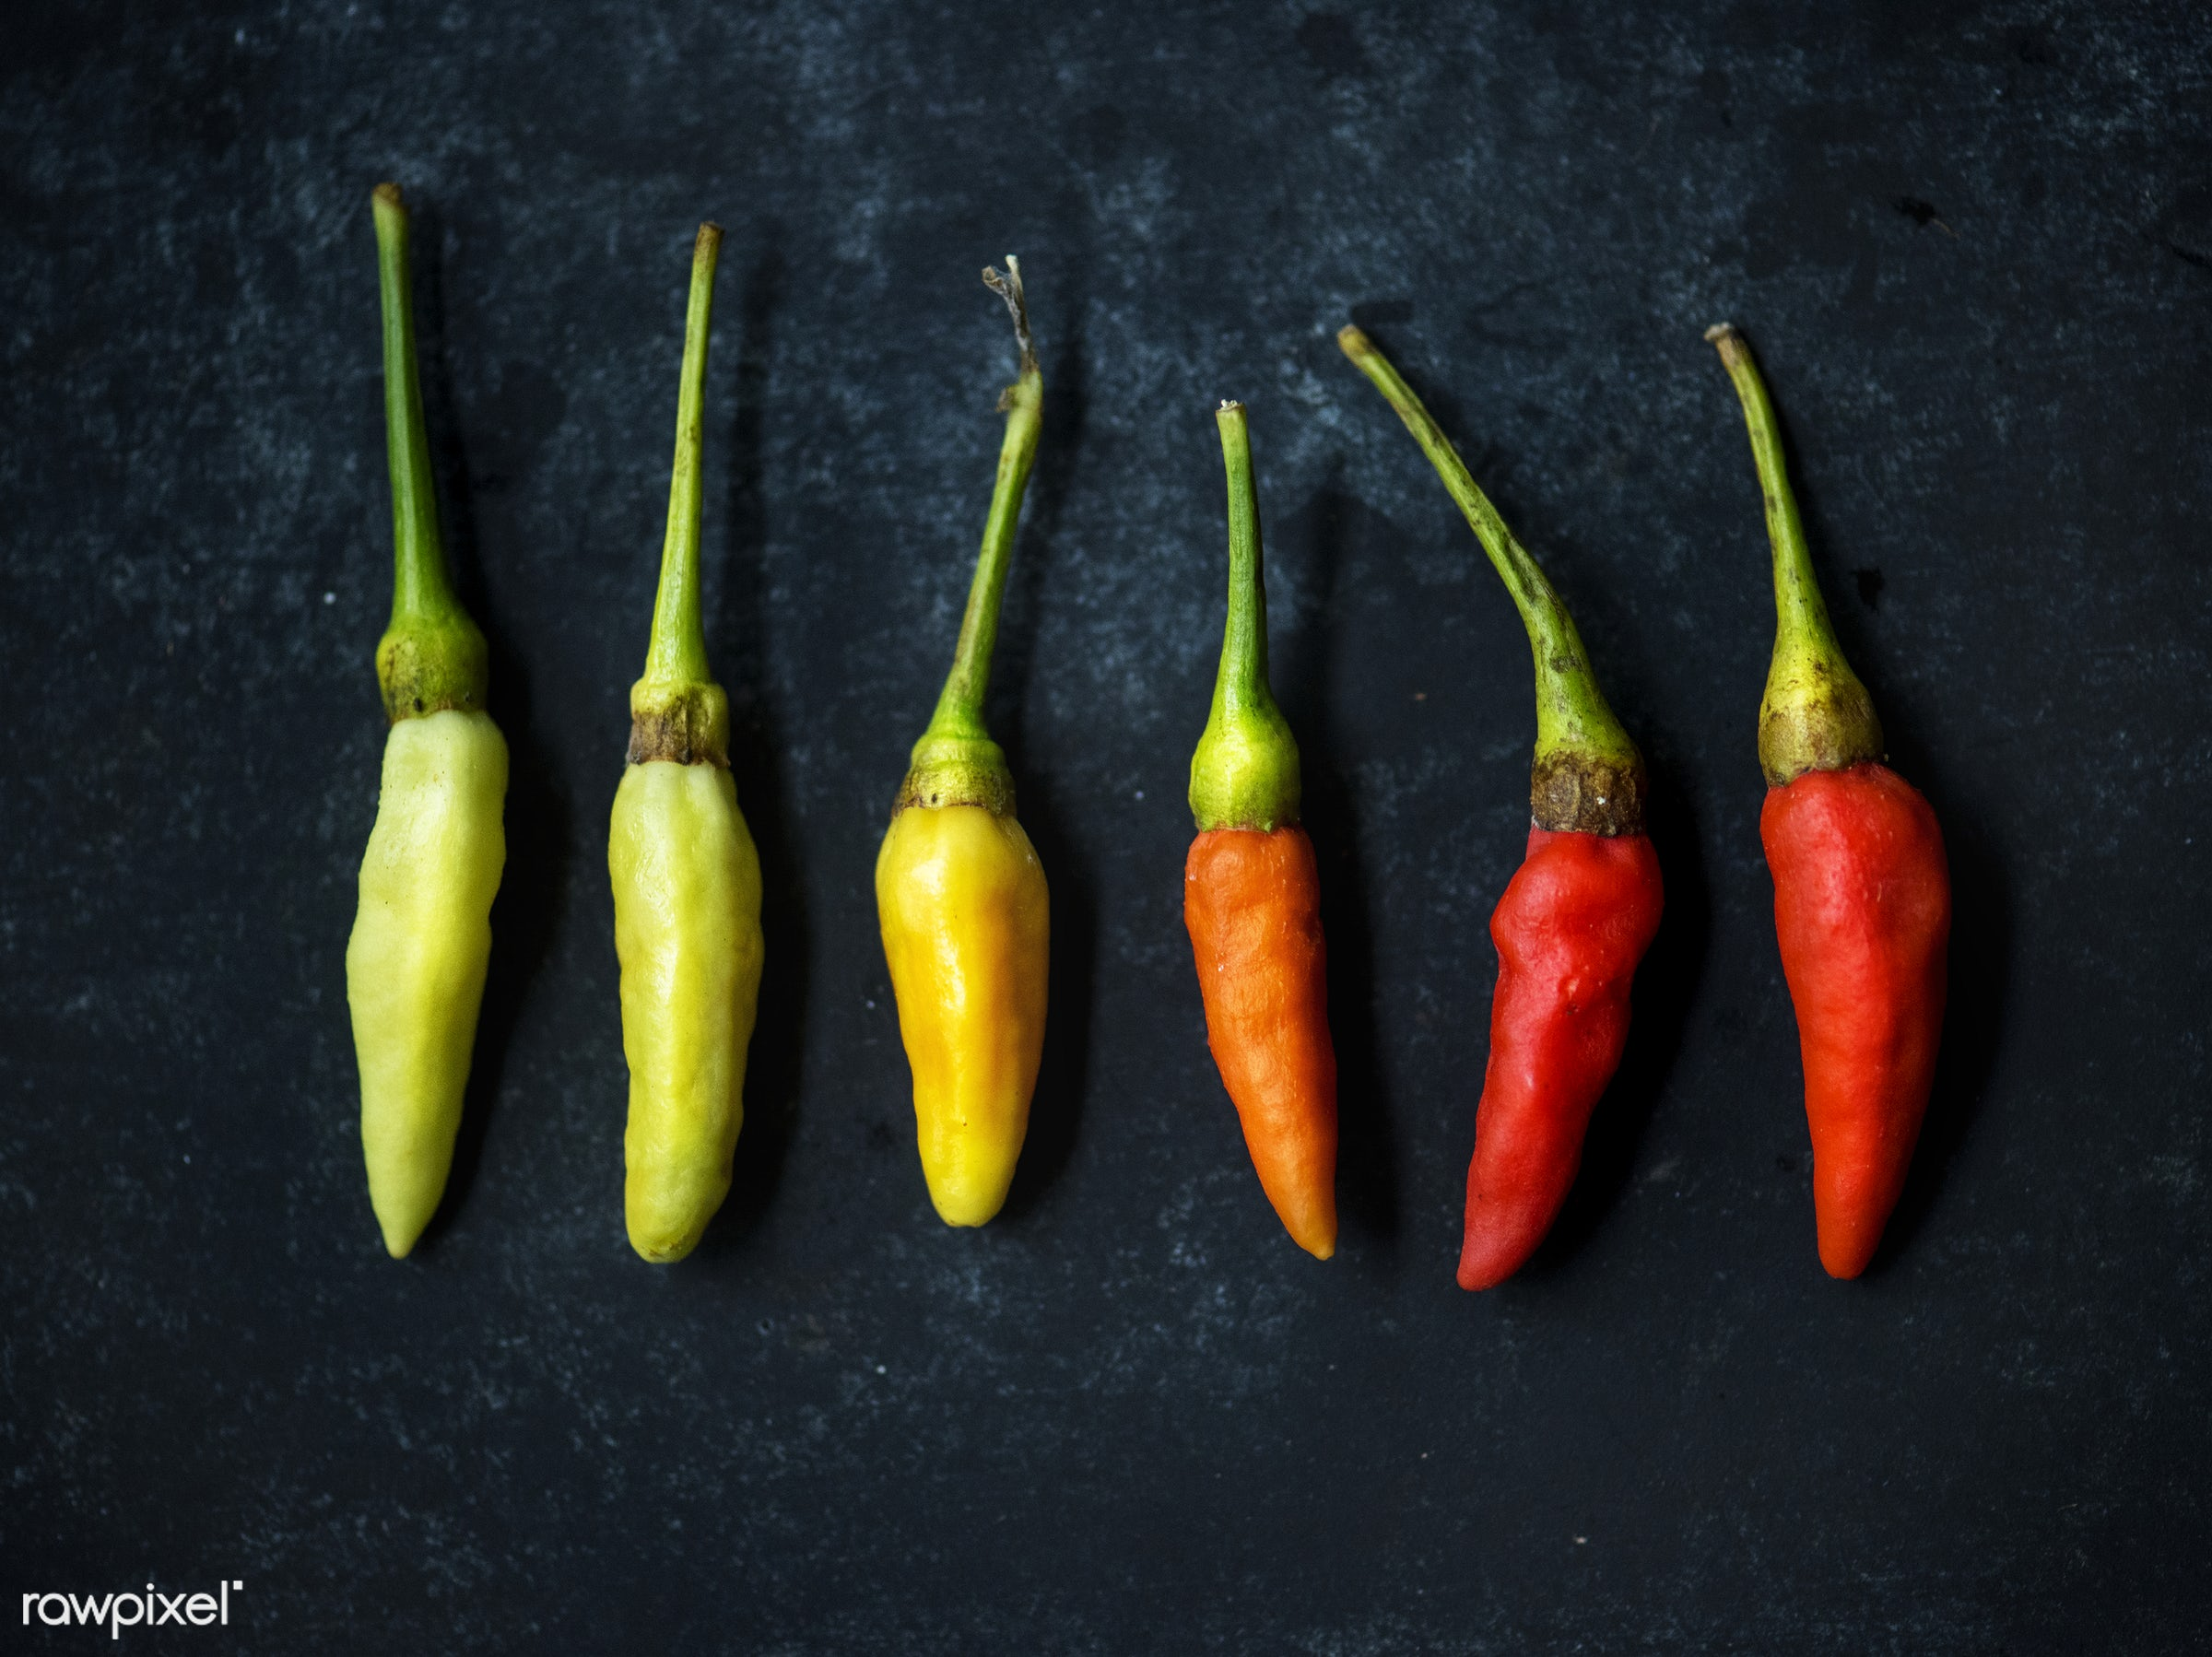 Fresh chili peppers - nobody, herbs, colors, spices, chili, asian, black background, ingredients, real, organic, asian...